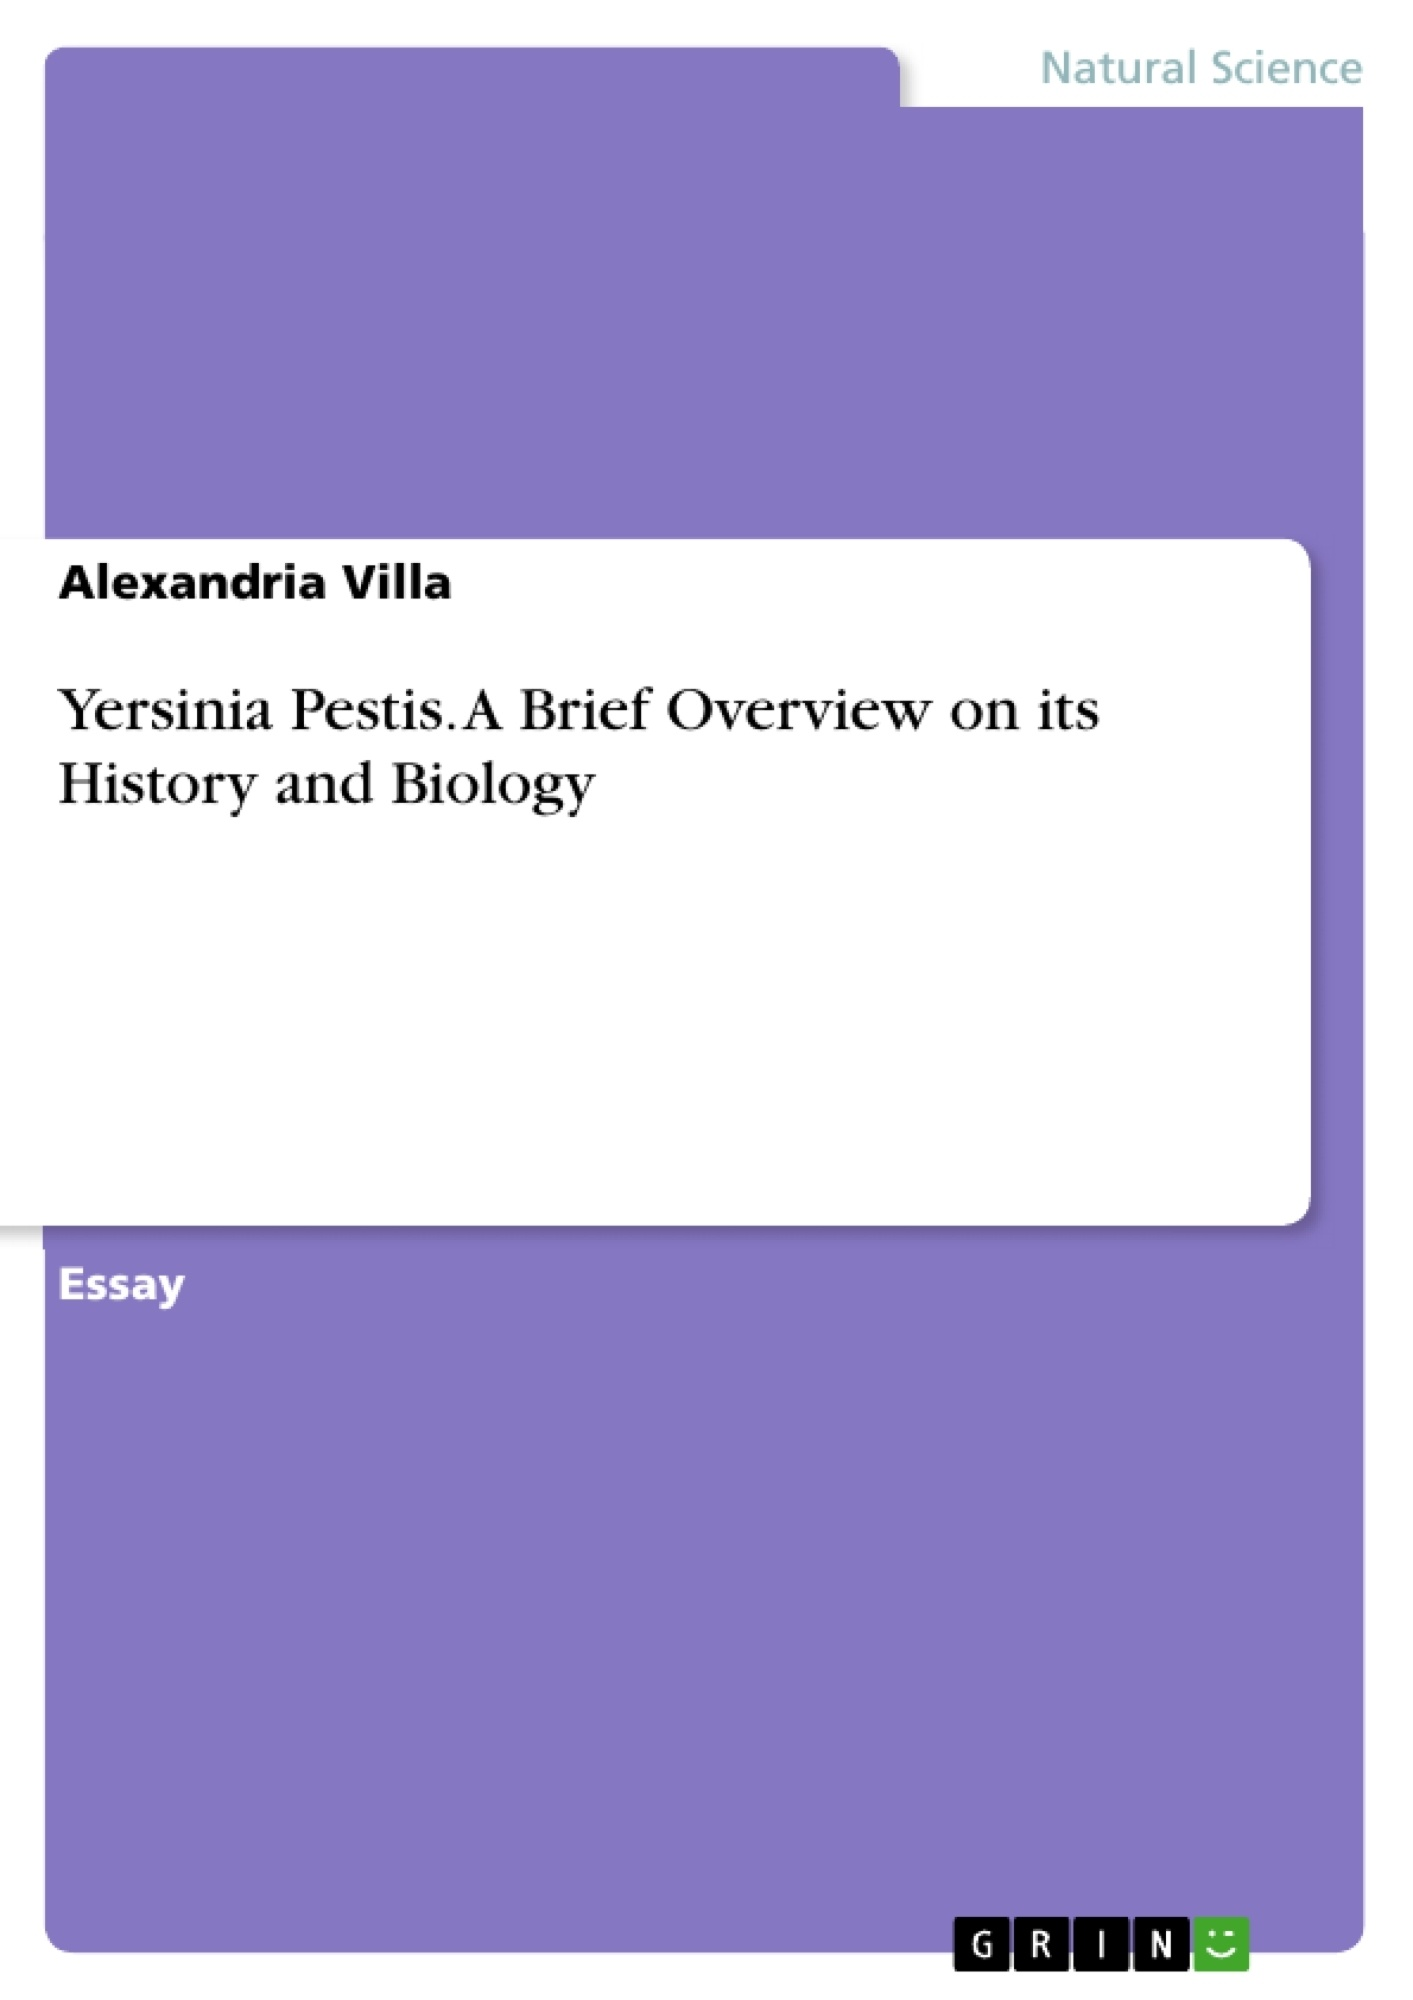 Title: Yersinia Pestis. A Brief Overview on its History and Biology